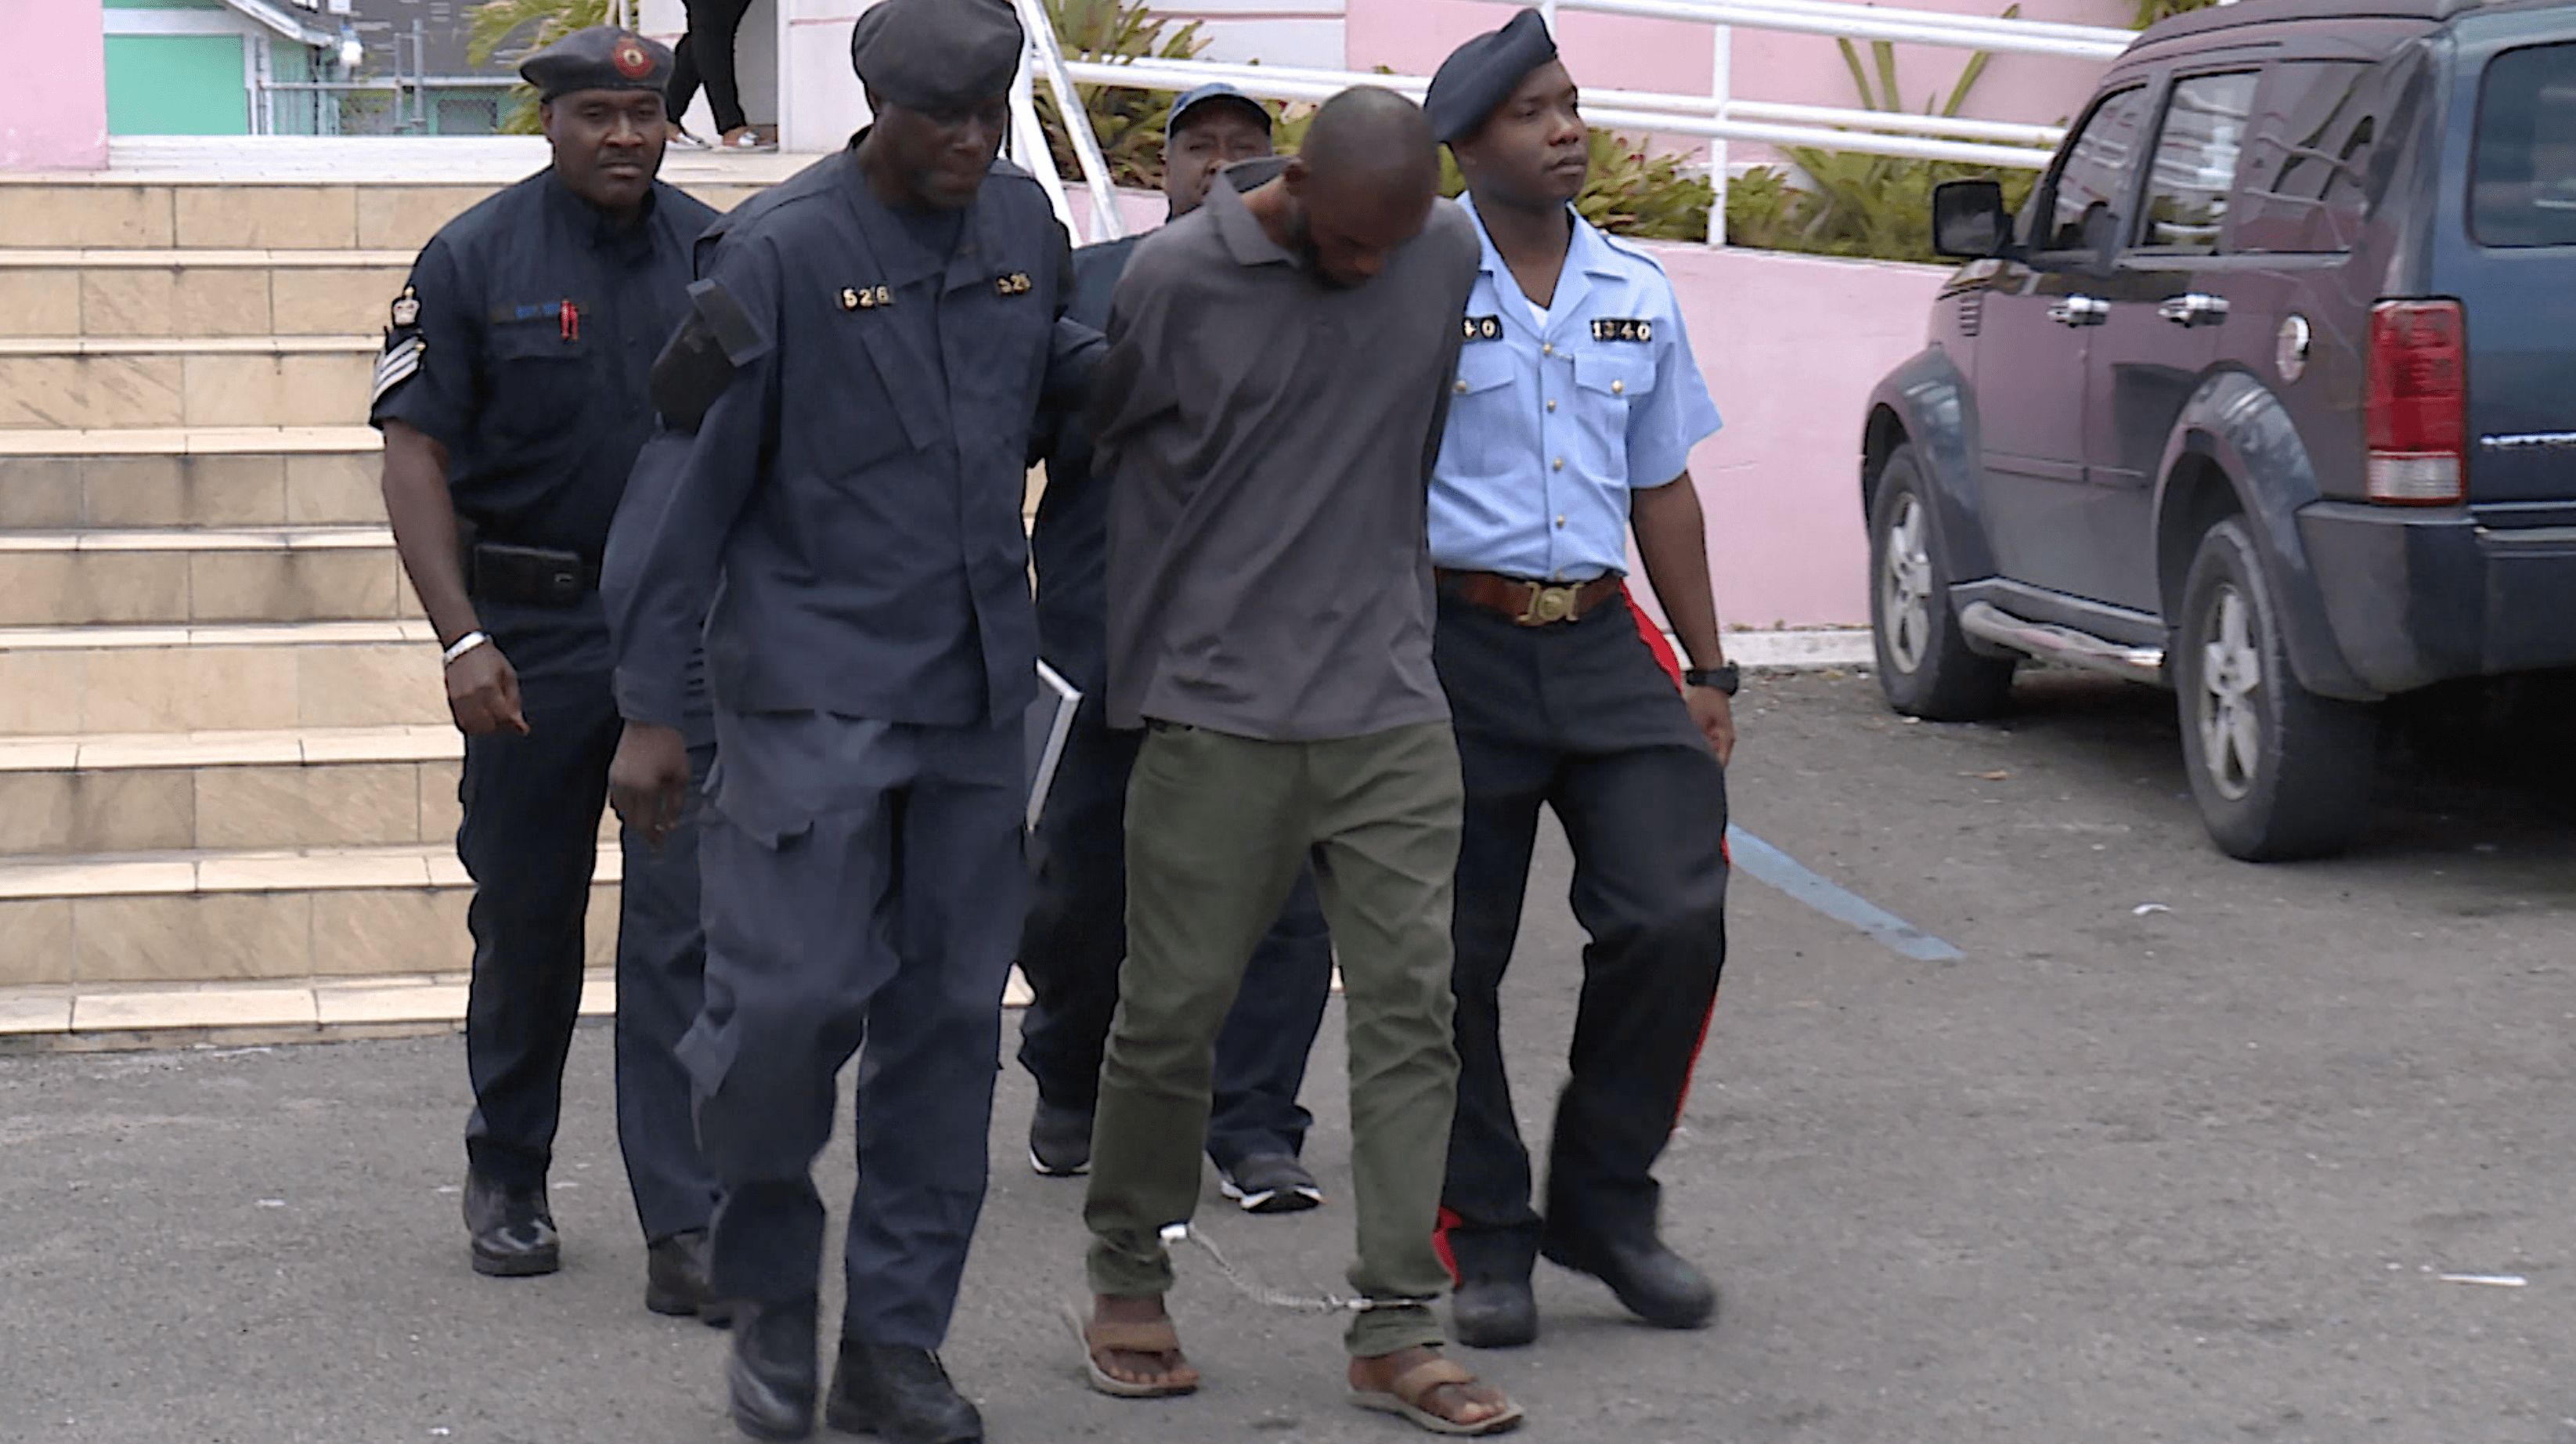 Man arraigned on several charges of theft and housebreaking